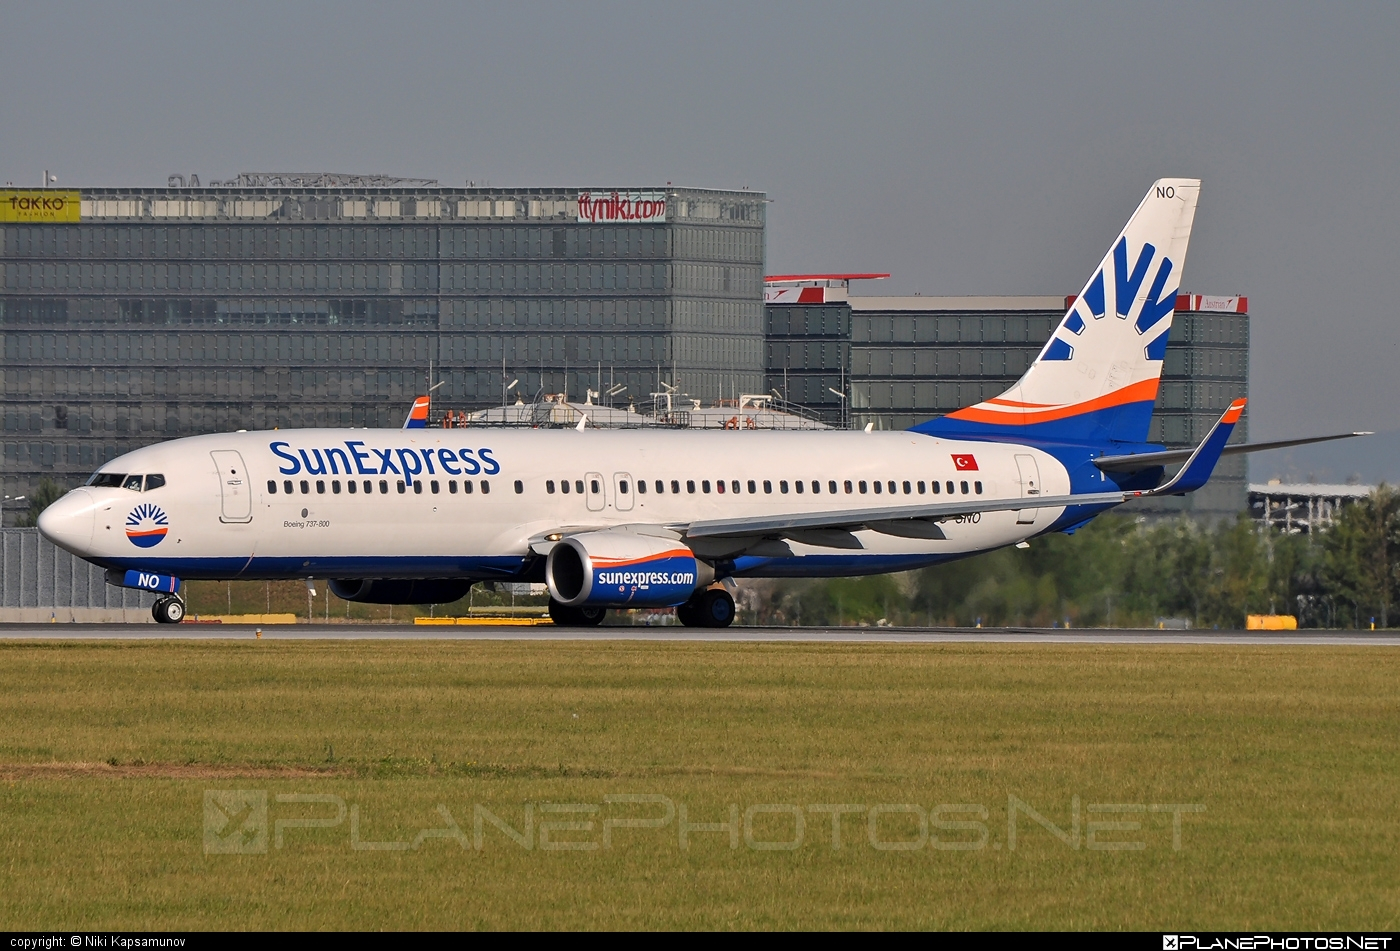 Boeing 737-800 - TC-SNO operated by SunExpress #b737 #b737nextgen #b737ng #boeing #boeing737 #sunexpress